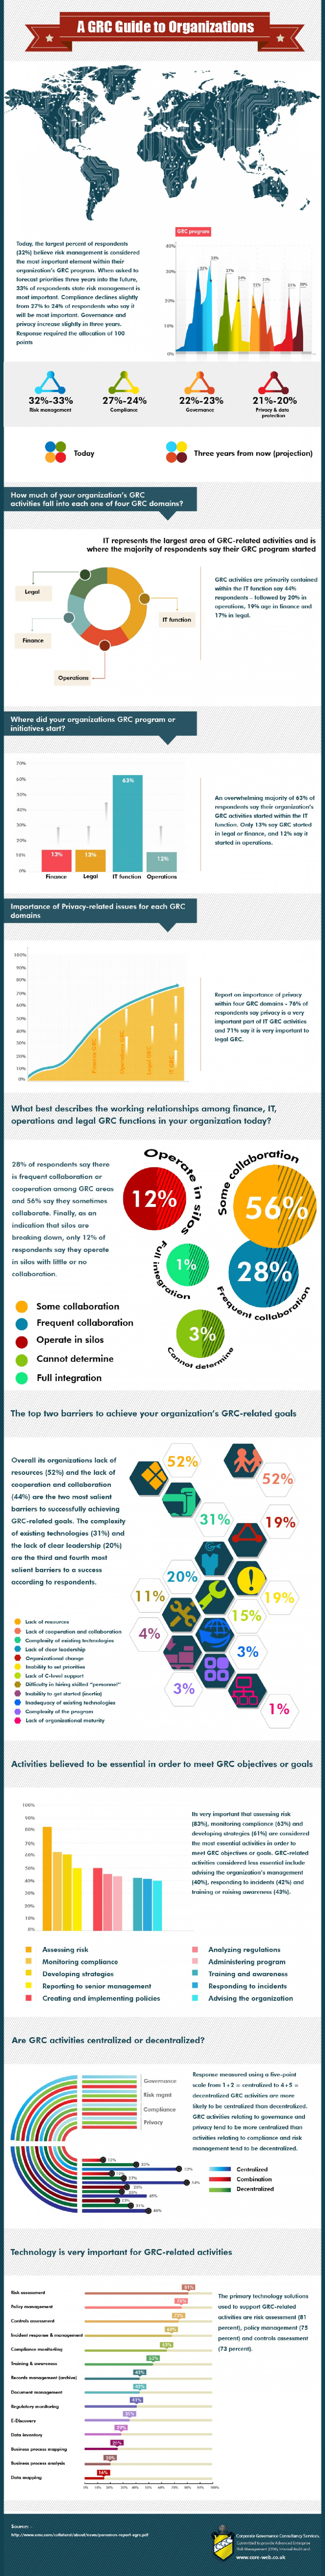 A GRC Guide (governance, risk and compliance) to organizations Infographic